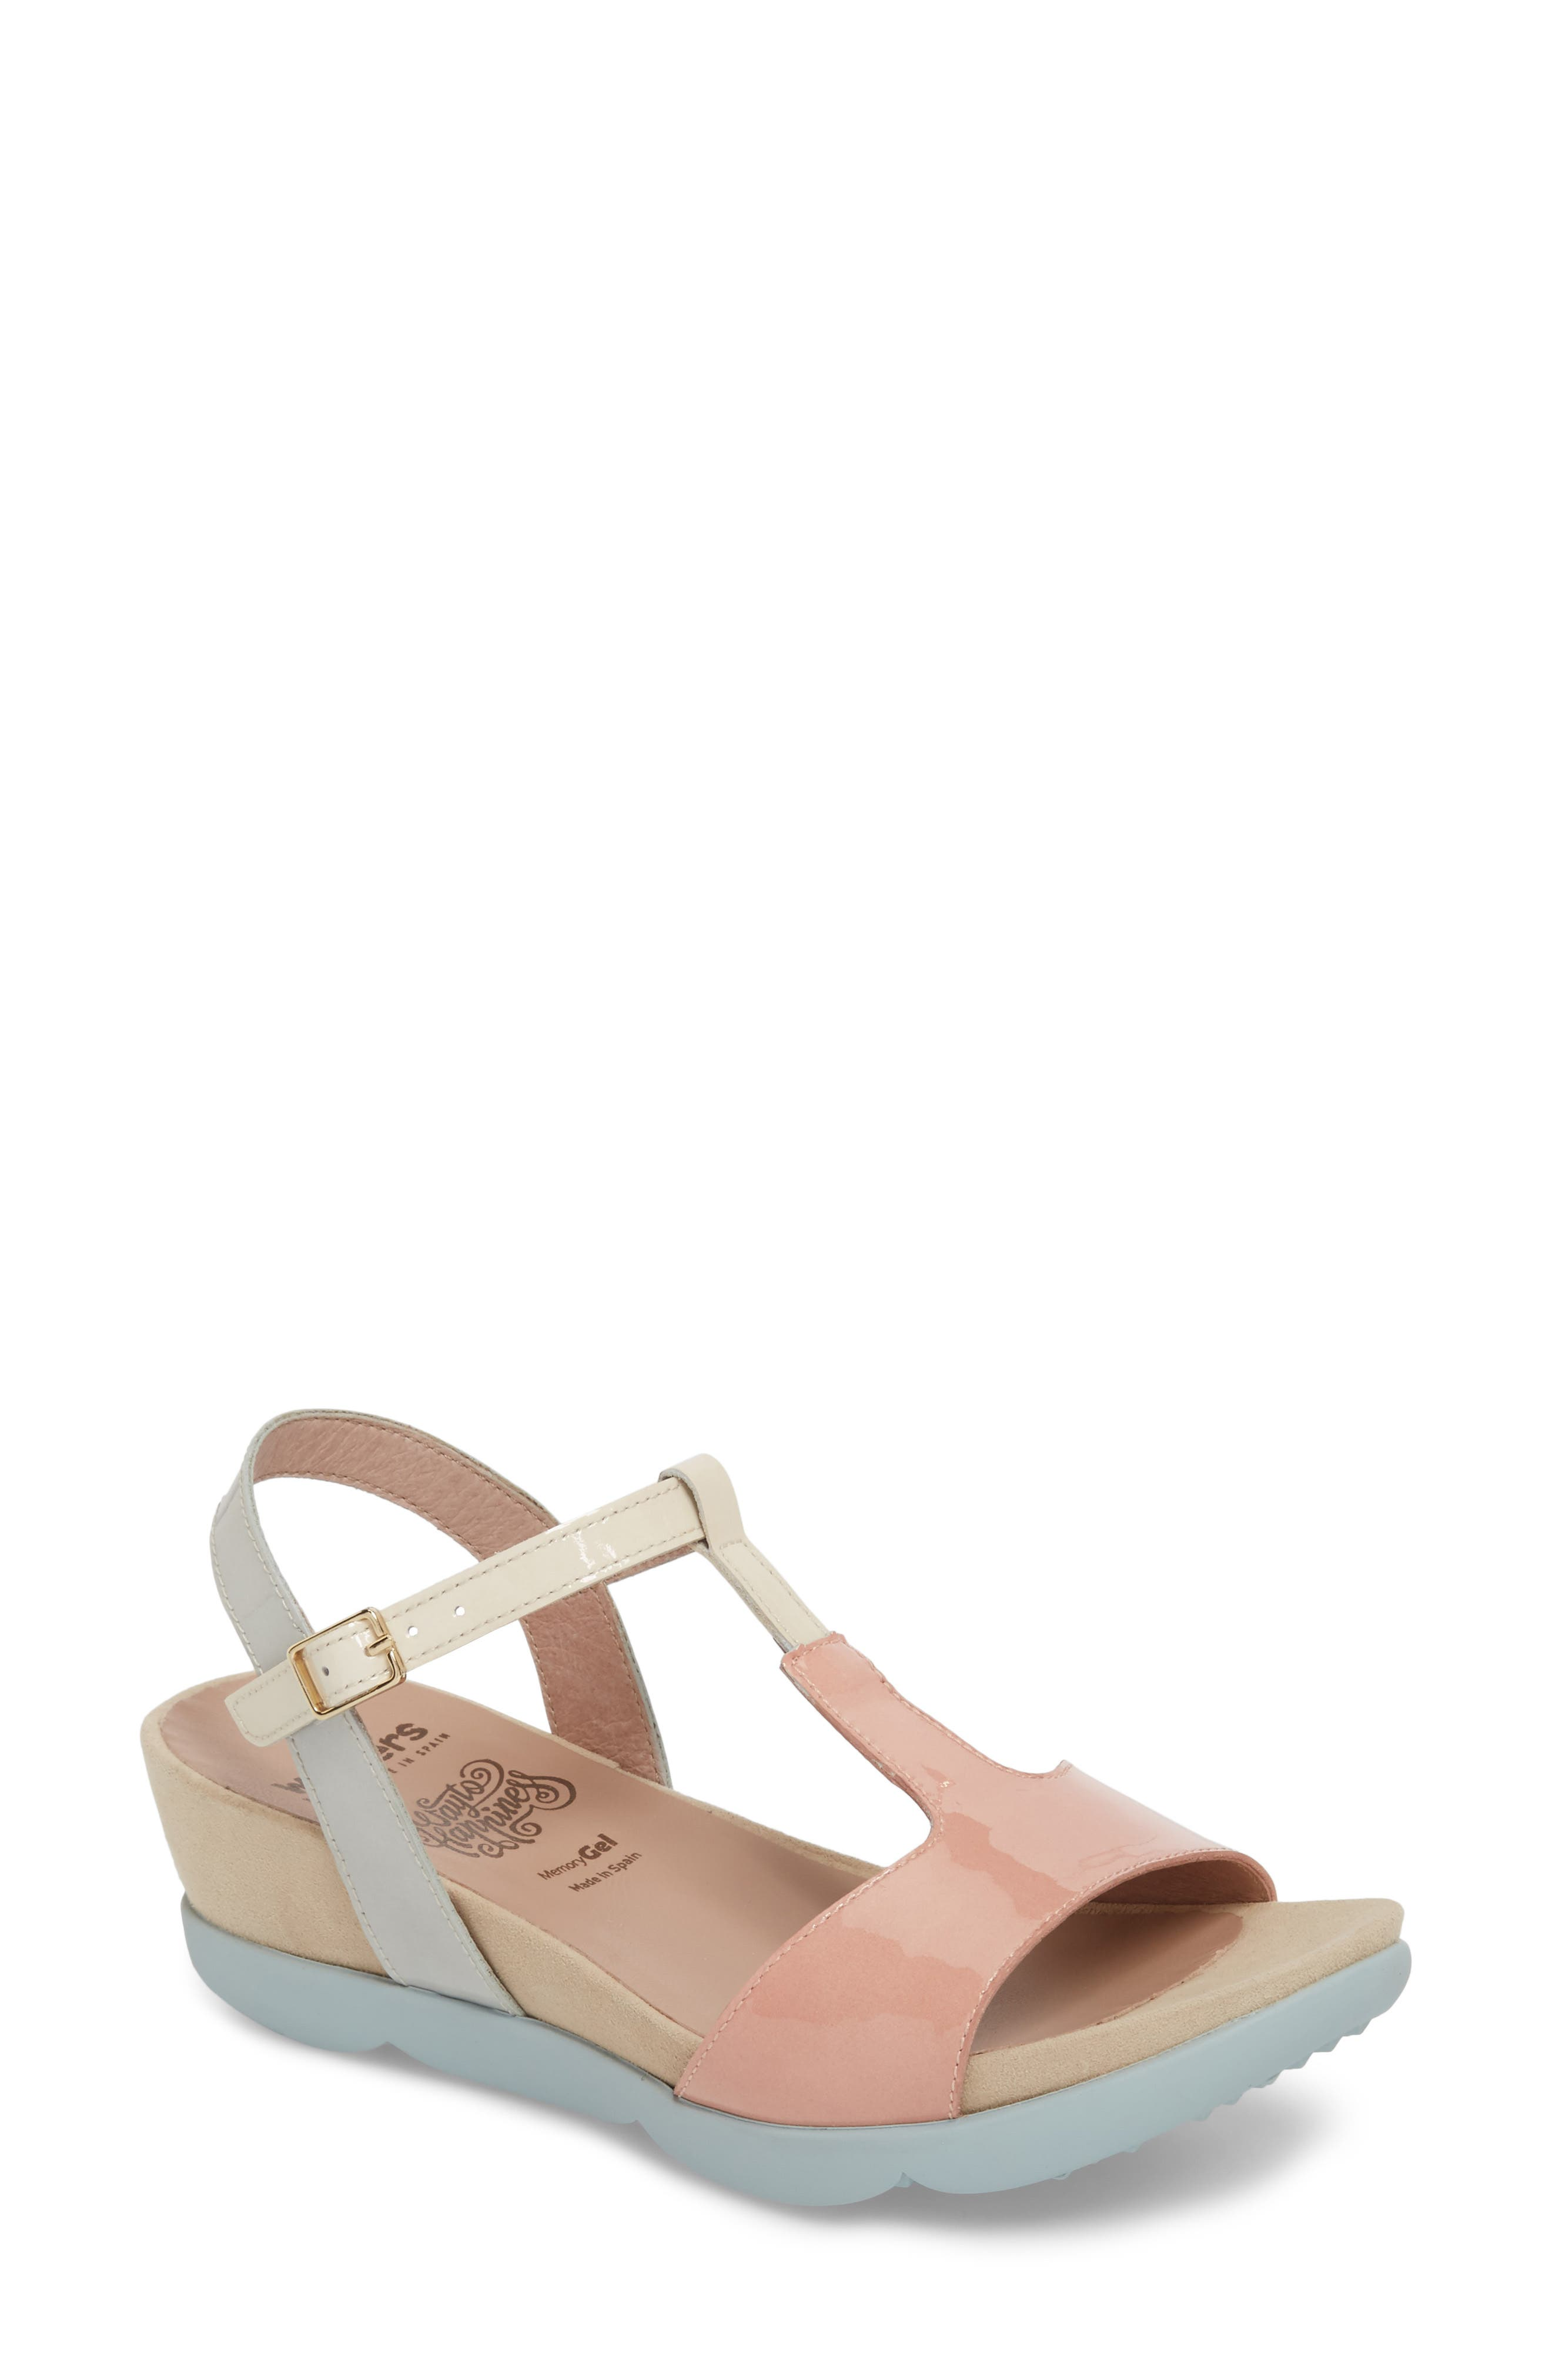 Wedge Sandal,                         Main,                         color, Nude/ Off/ Light Grey Leather